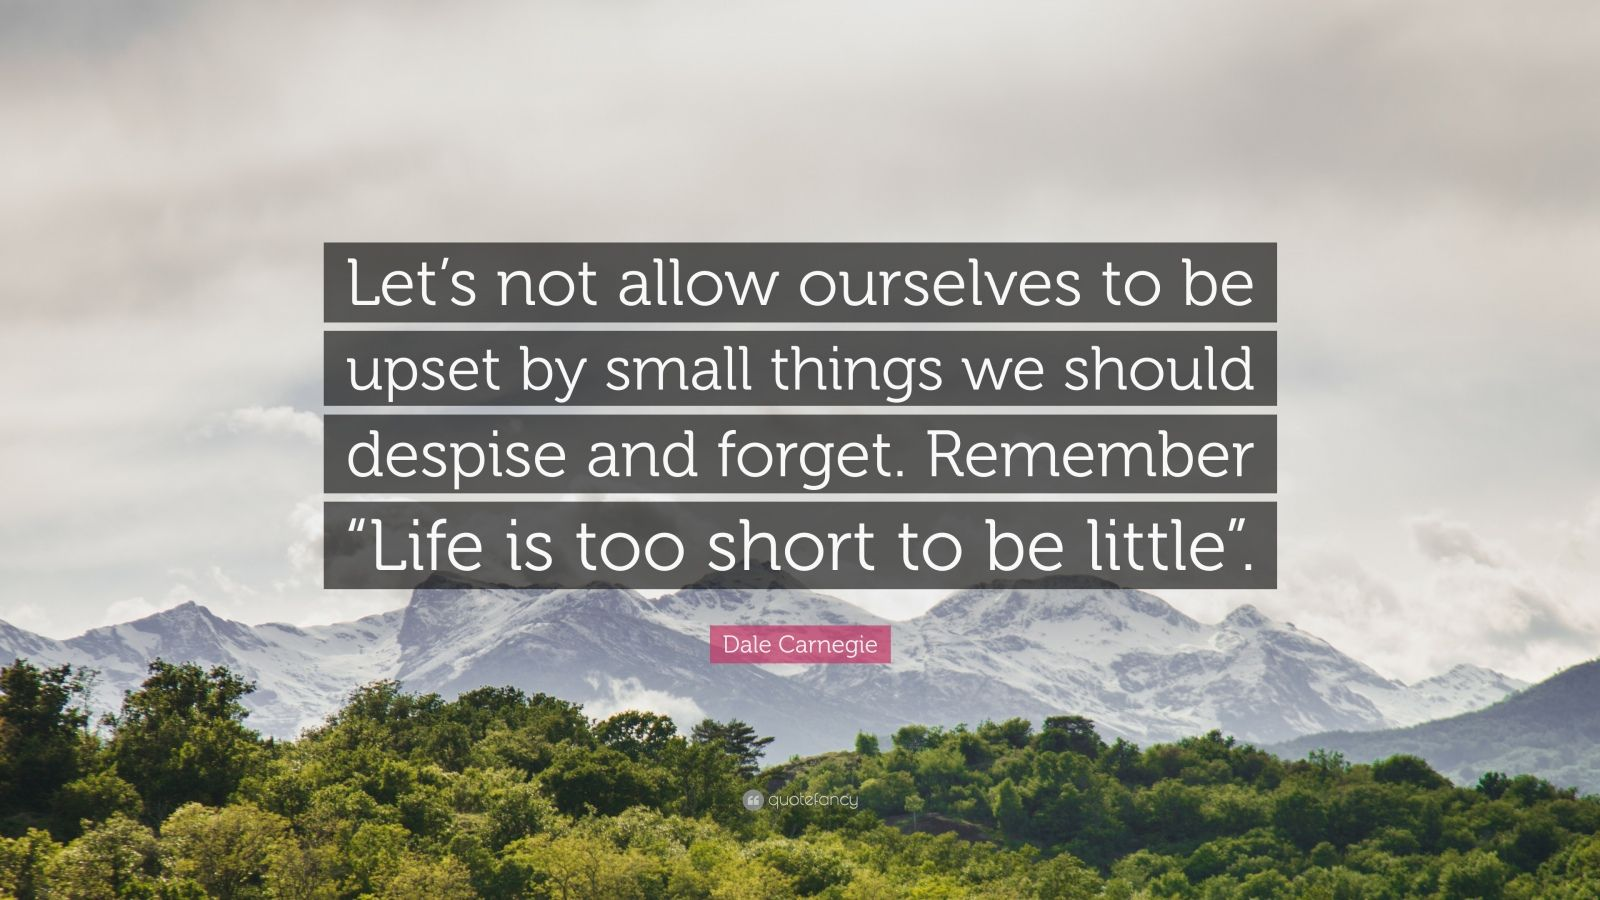 """Dale Carnegie Quote: """"Let's not allow ourselves to be upset by small things we should despise and forget. Remember """"Life is too short to be little""""."""""""